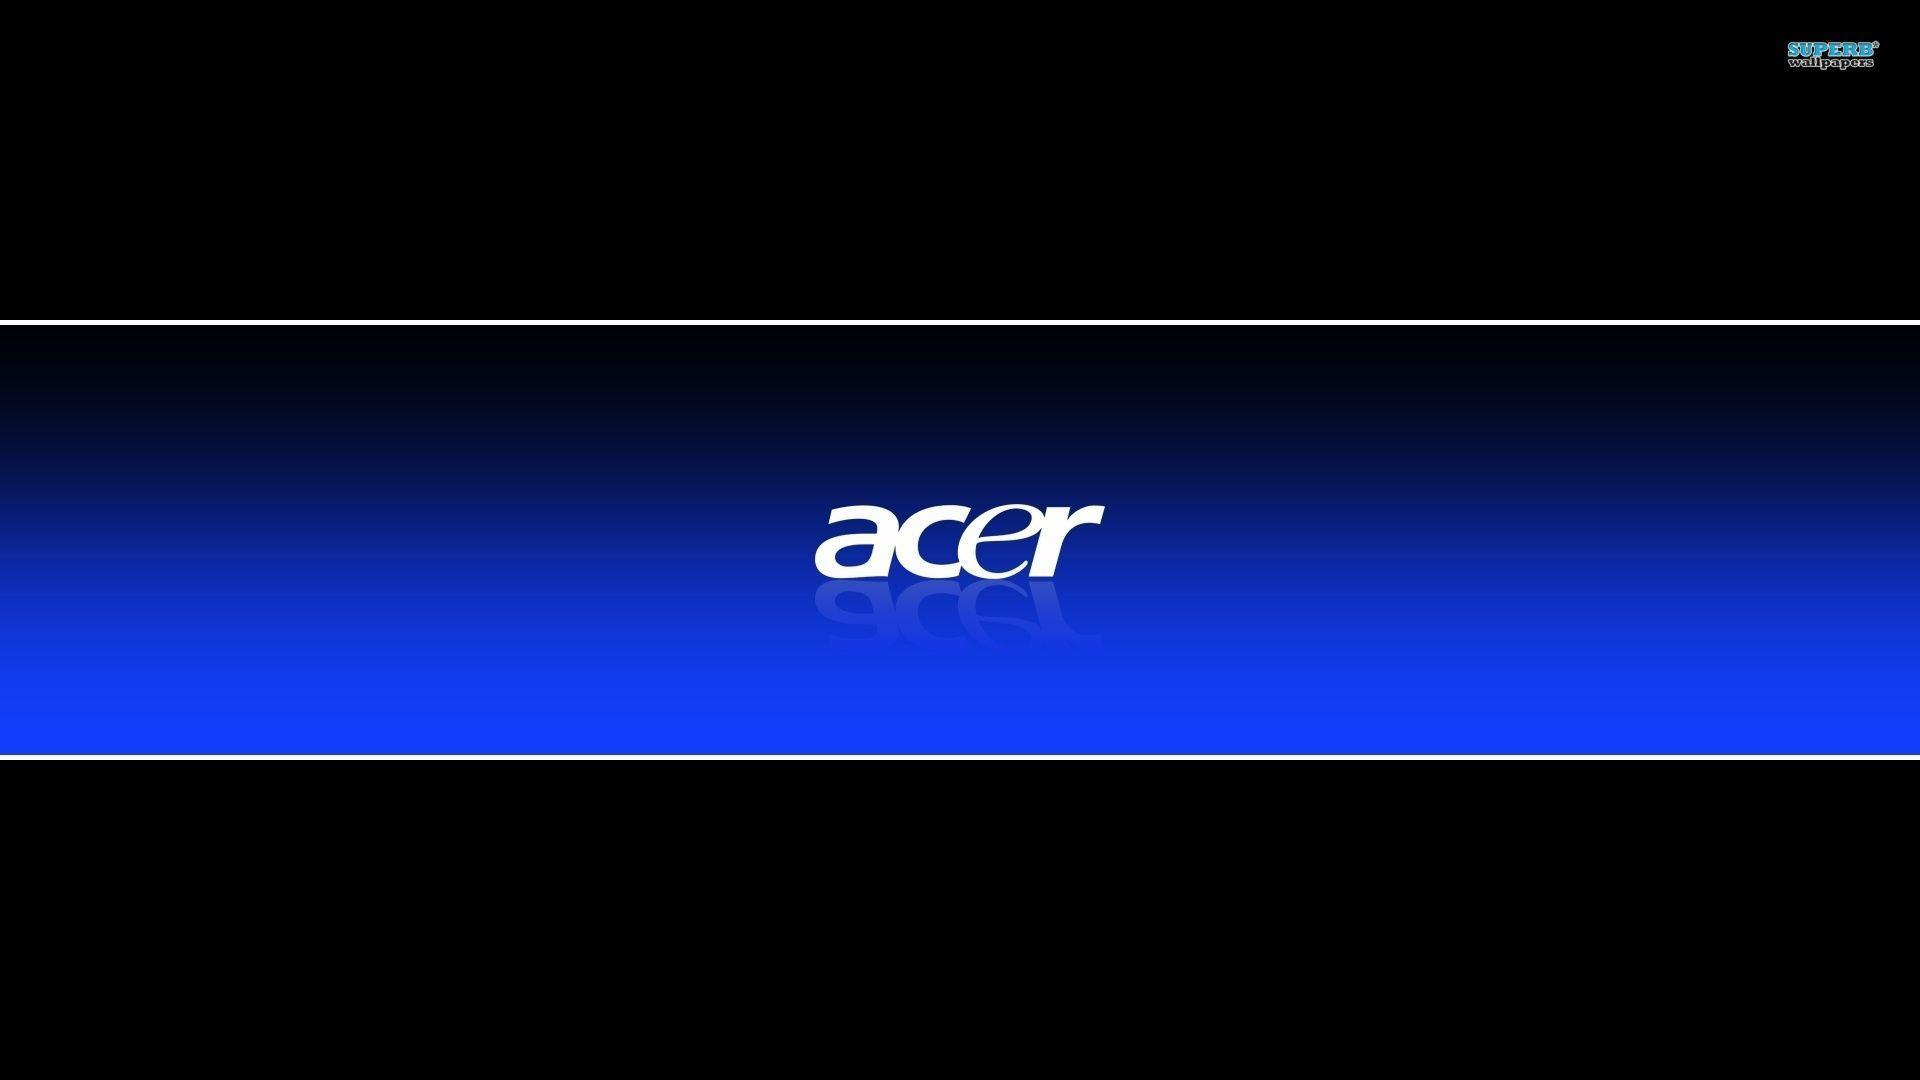 acer wallpapers windows 7 wallpaper cave